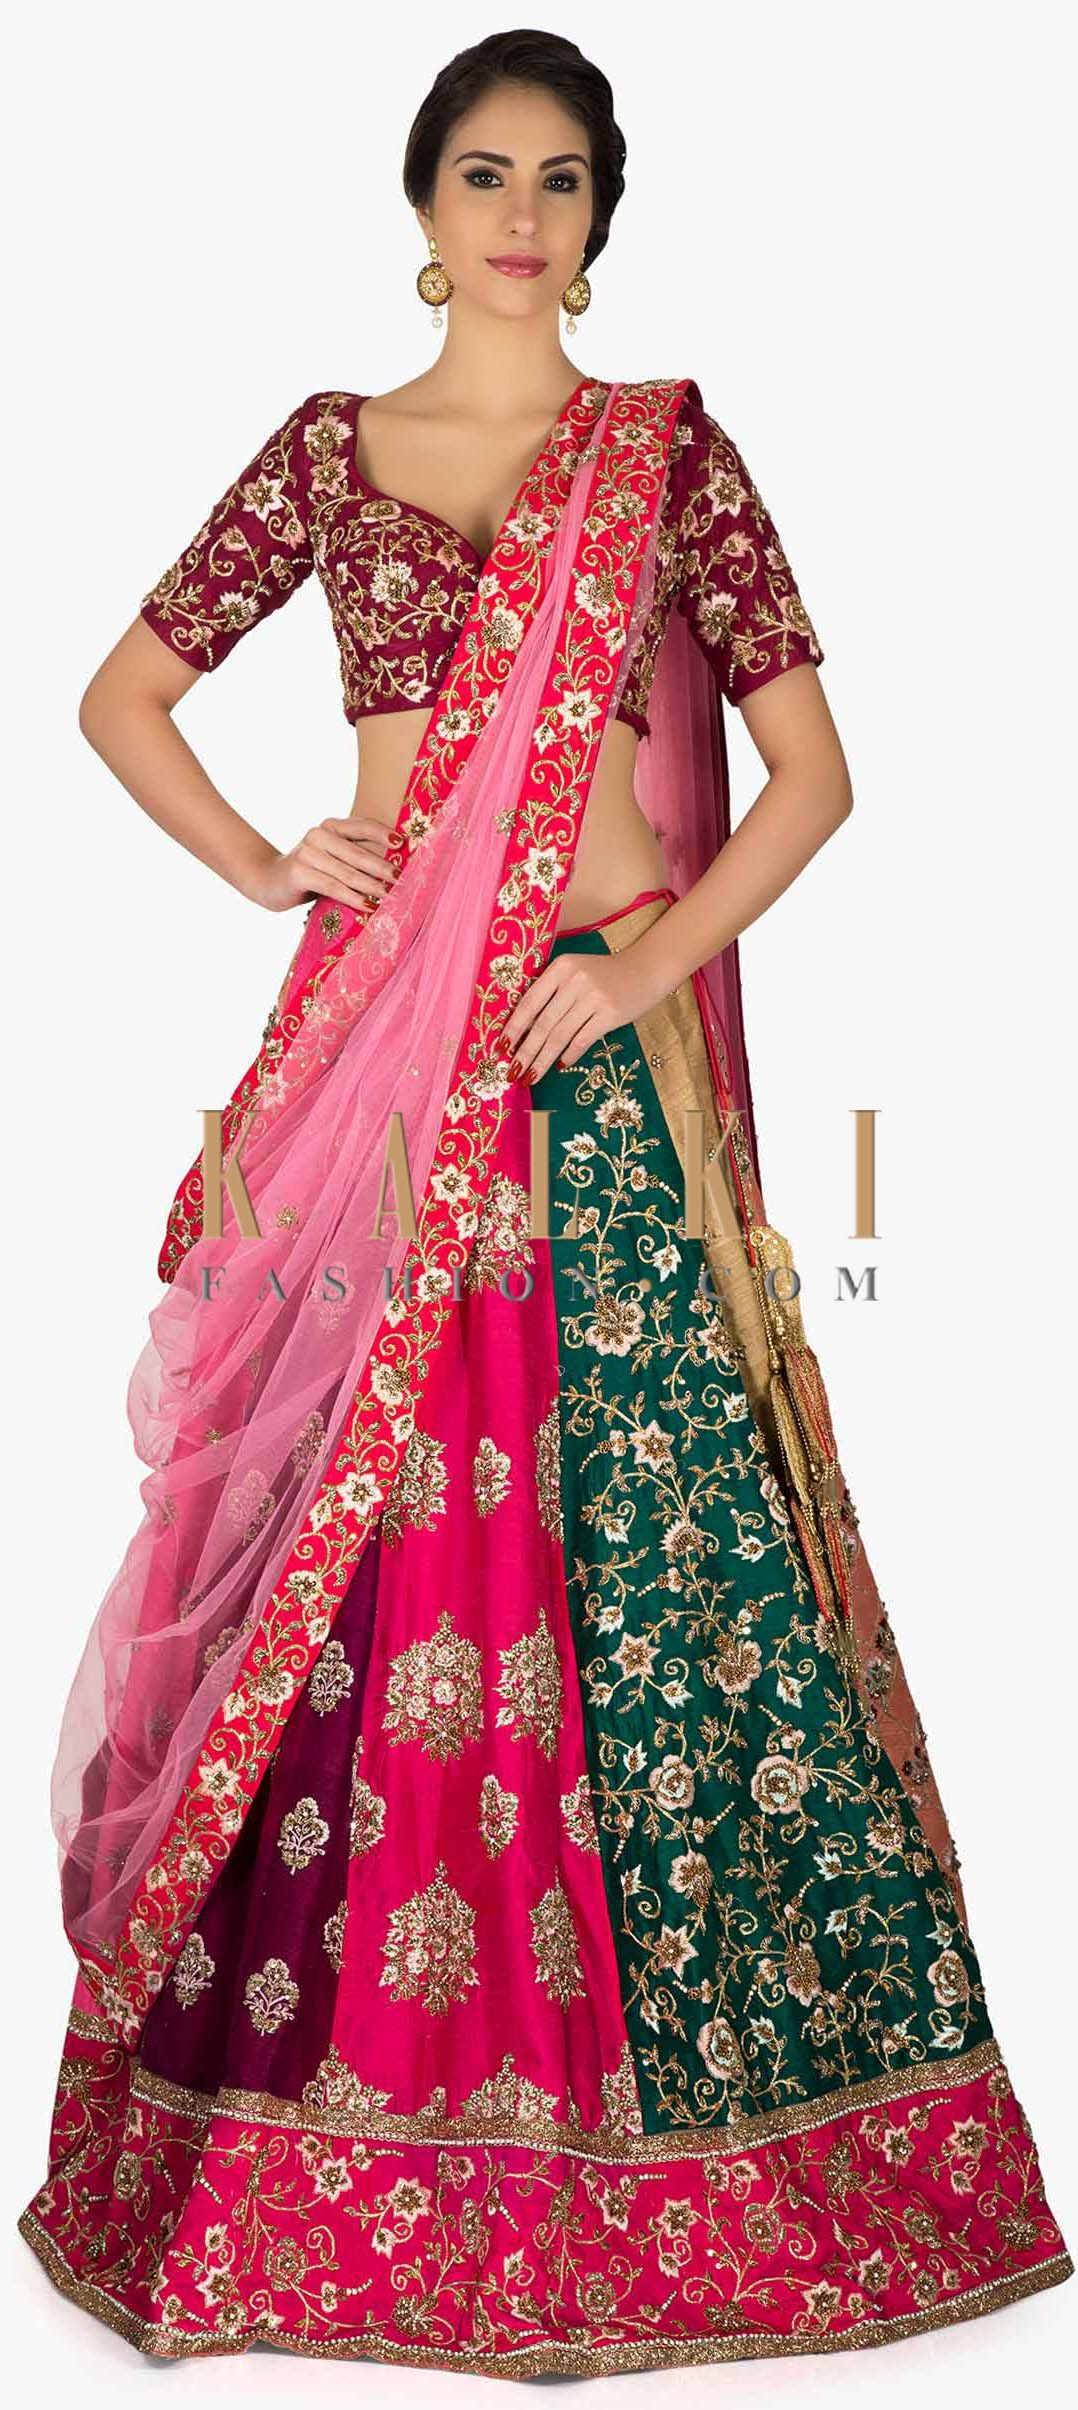 Multi-colored Raw Silk Lehenga set Featuring Resham Work and Sequins ...